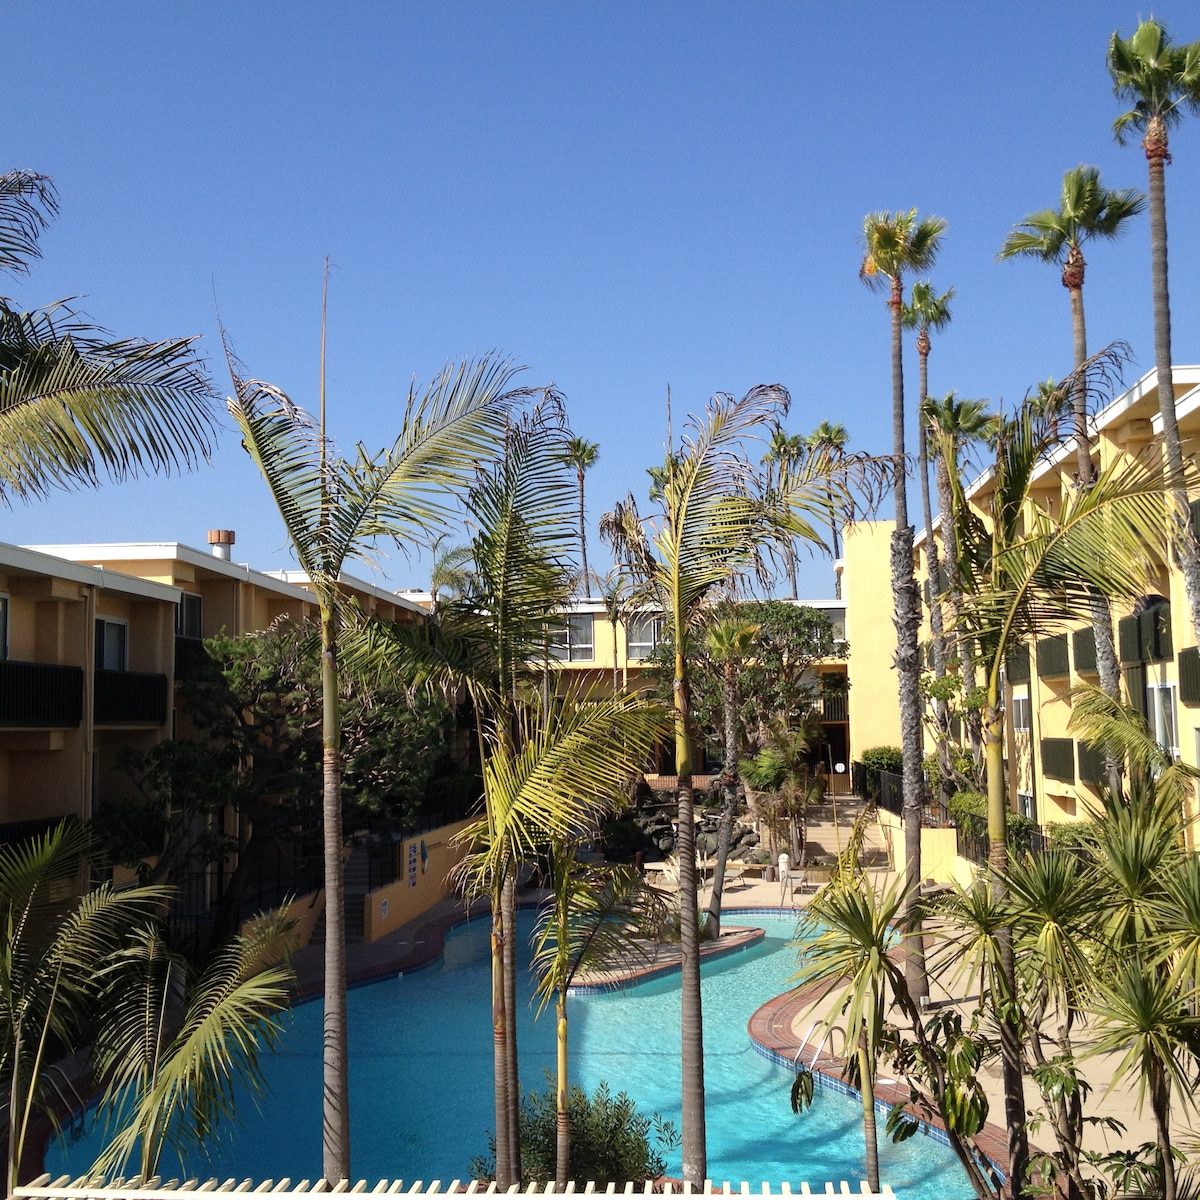 Great condo conveniently located near LAX and the